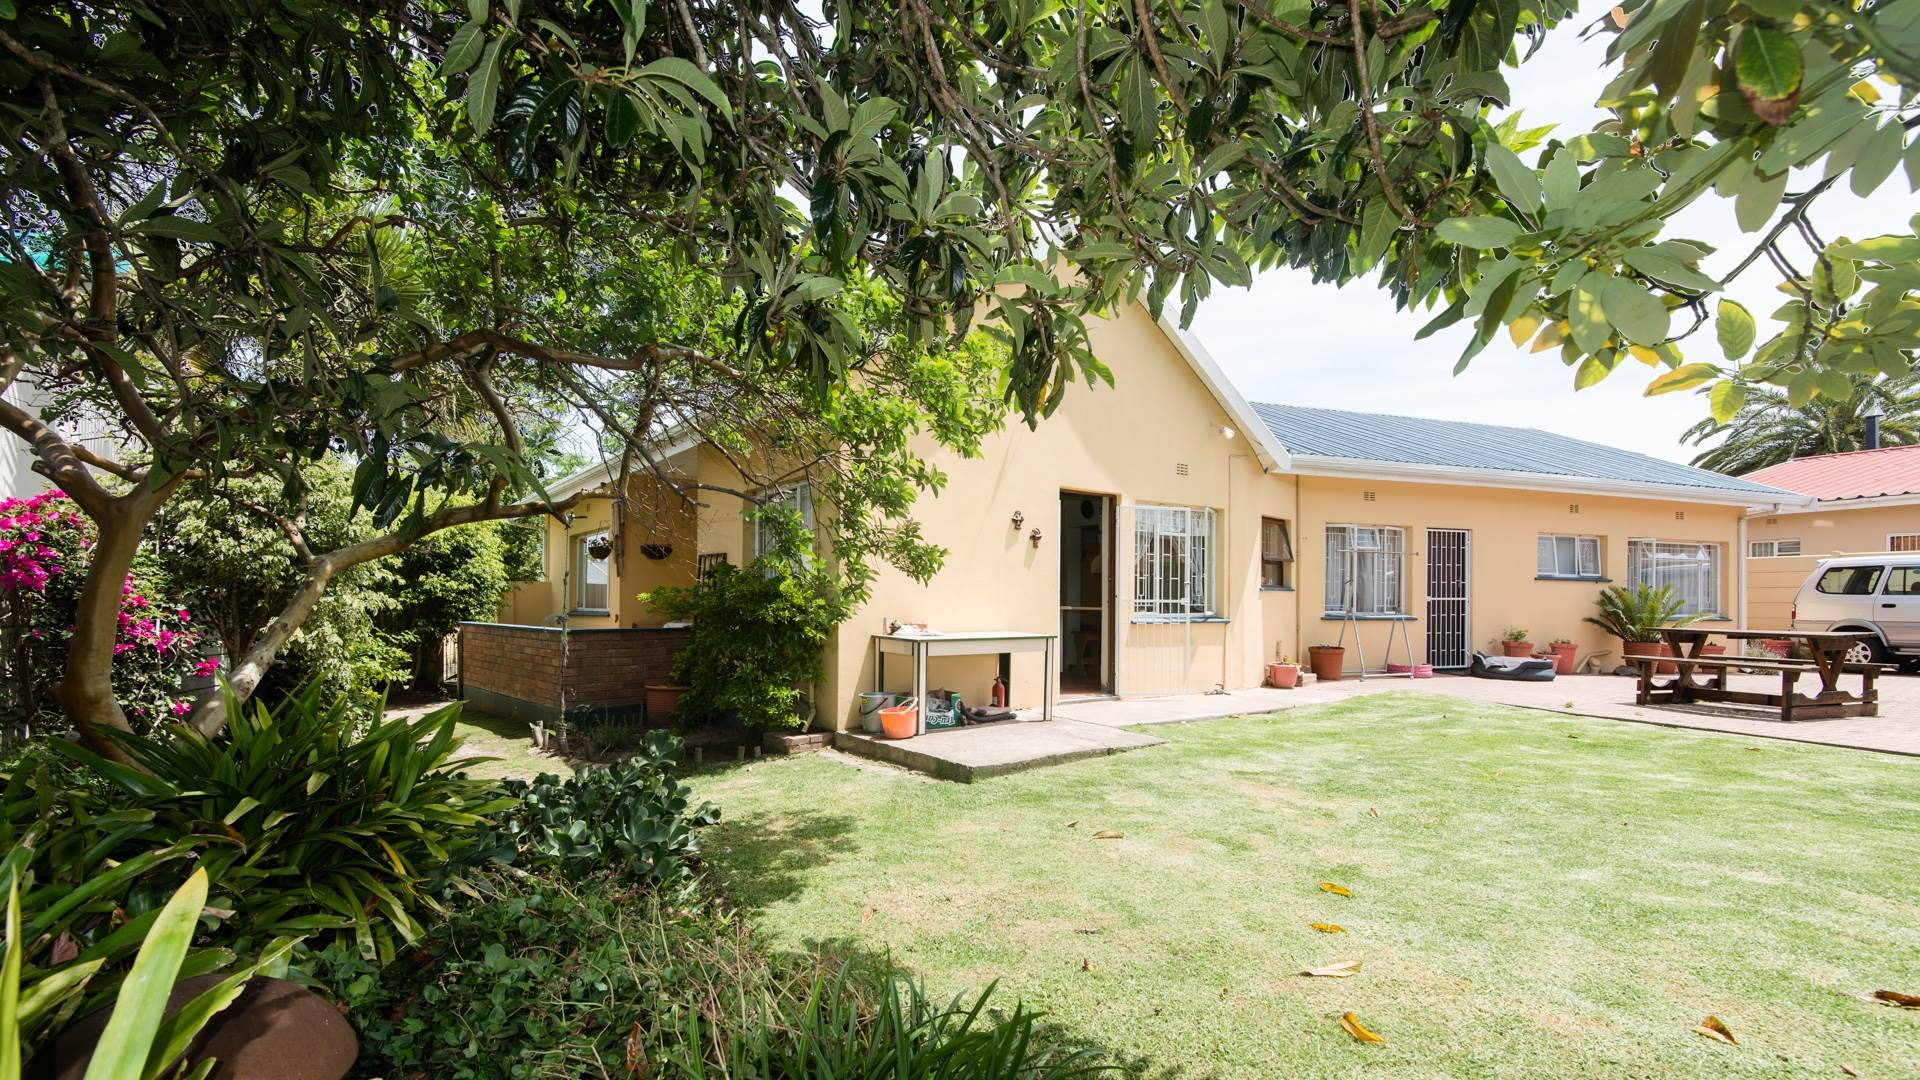 3 BedroomHouse For Sale In George East